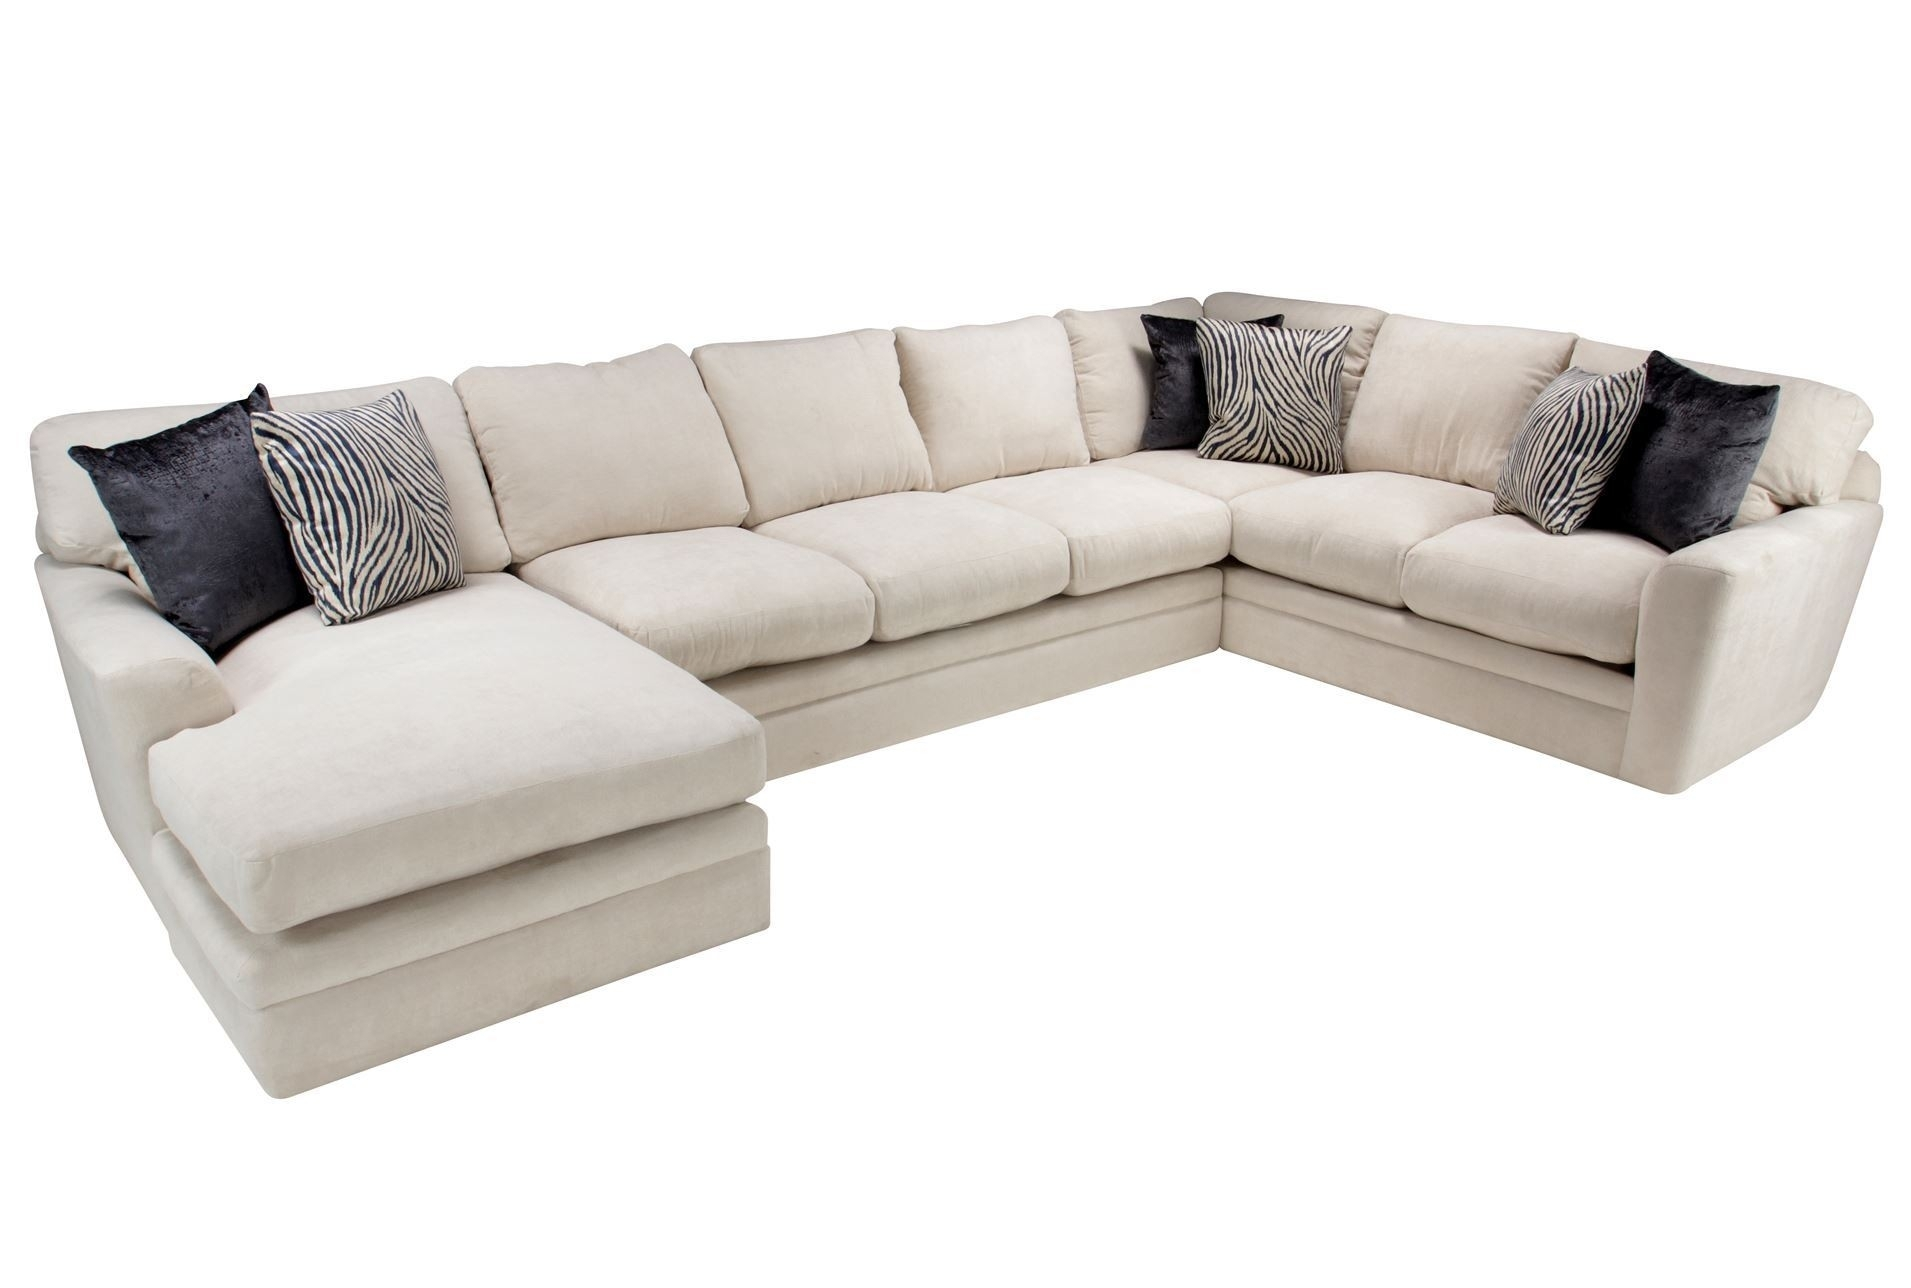 Living Spaces Sectional Sofas Delano 2 Piece W Laf Oversized Chaise With Regard To Delano 2 Piece Sectionals With Laf Oversized Chaise (Image 20 of 25)